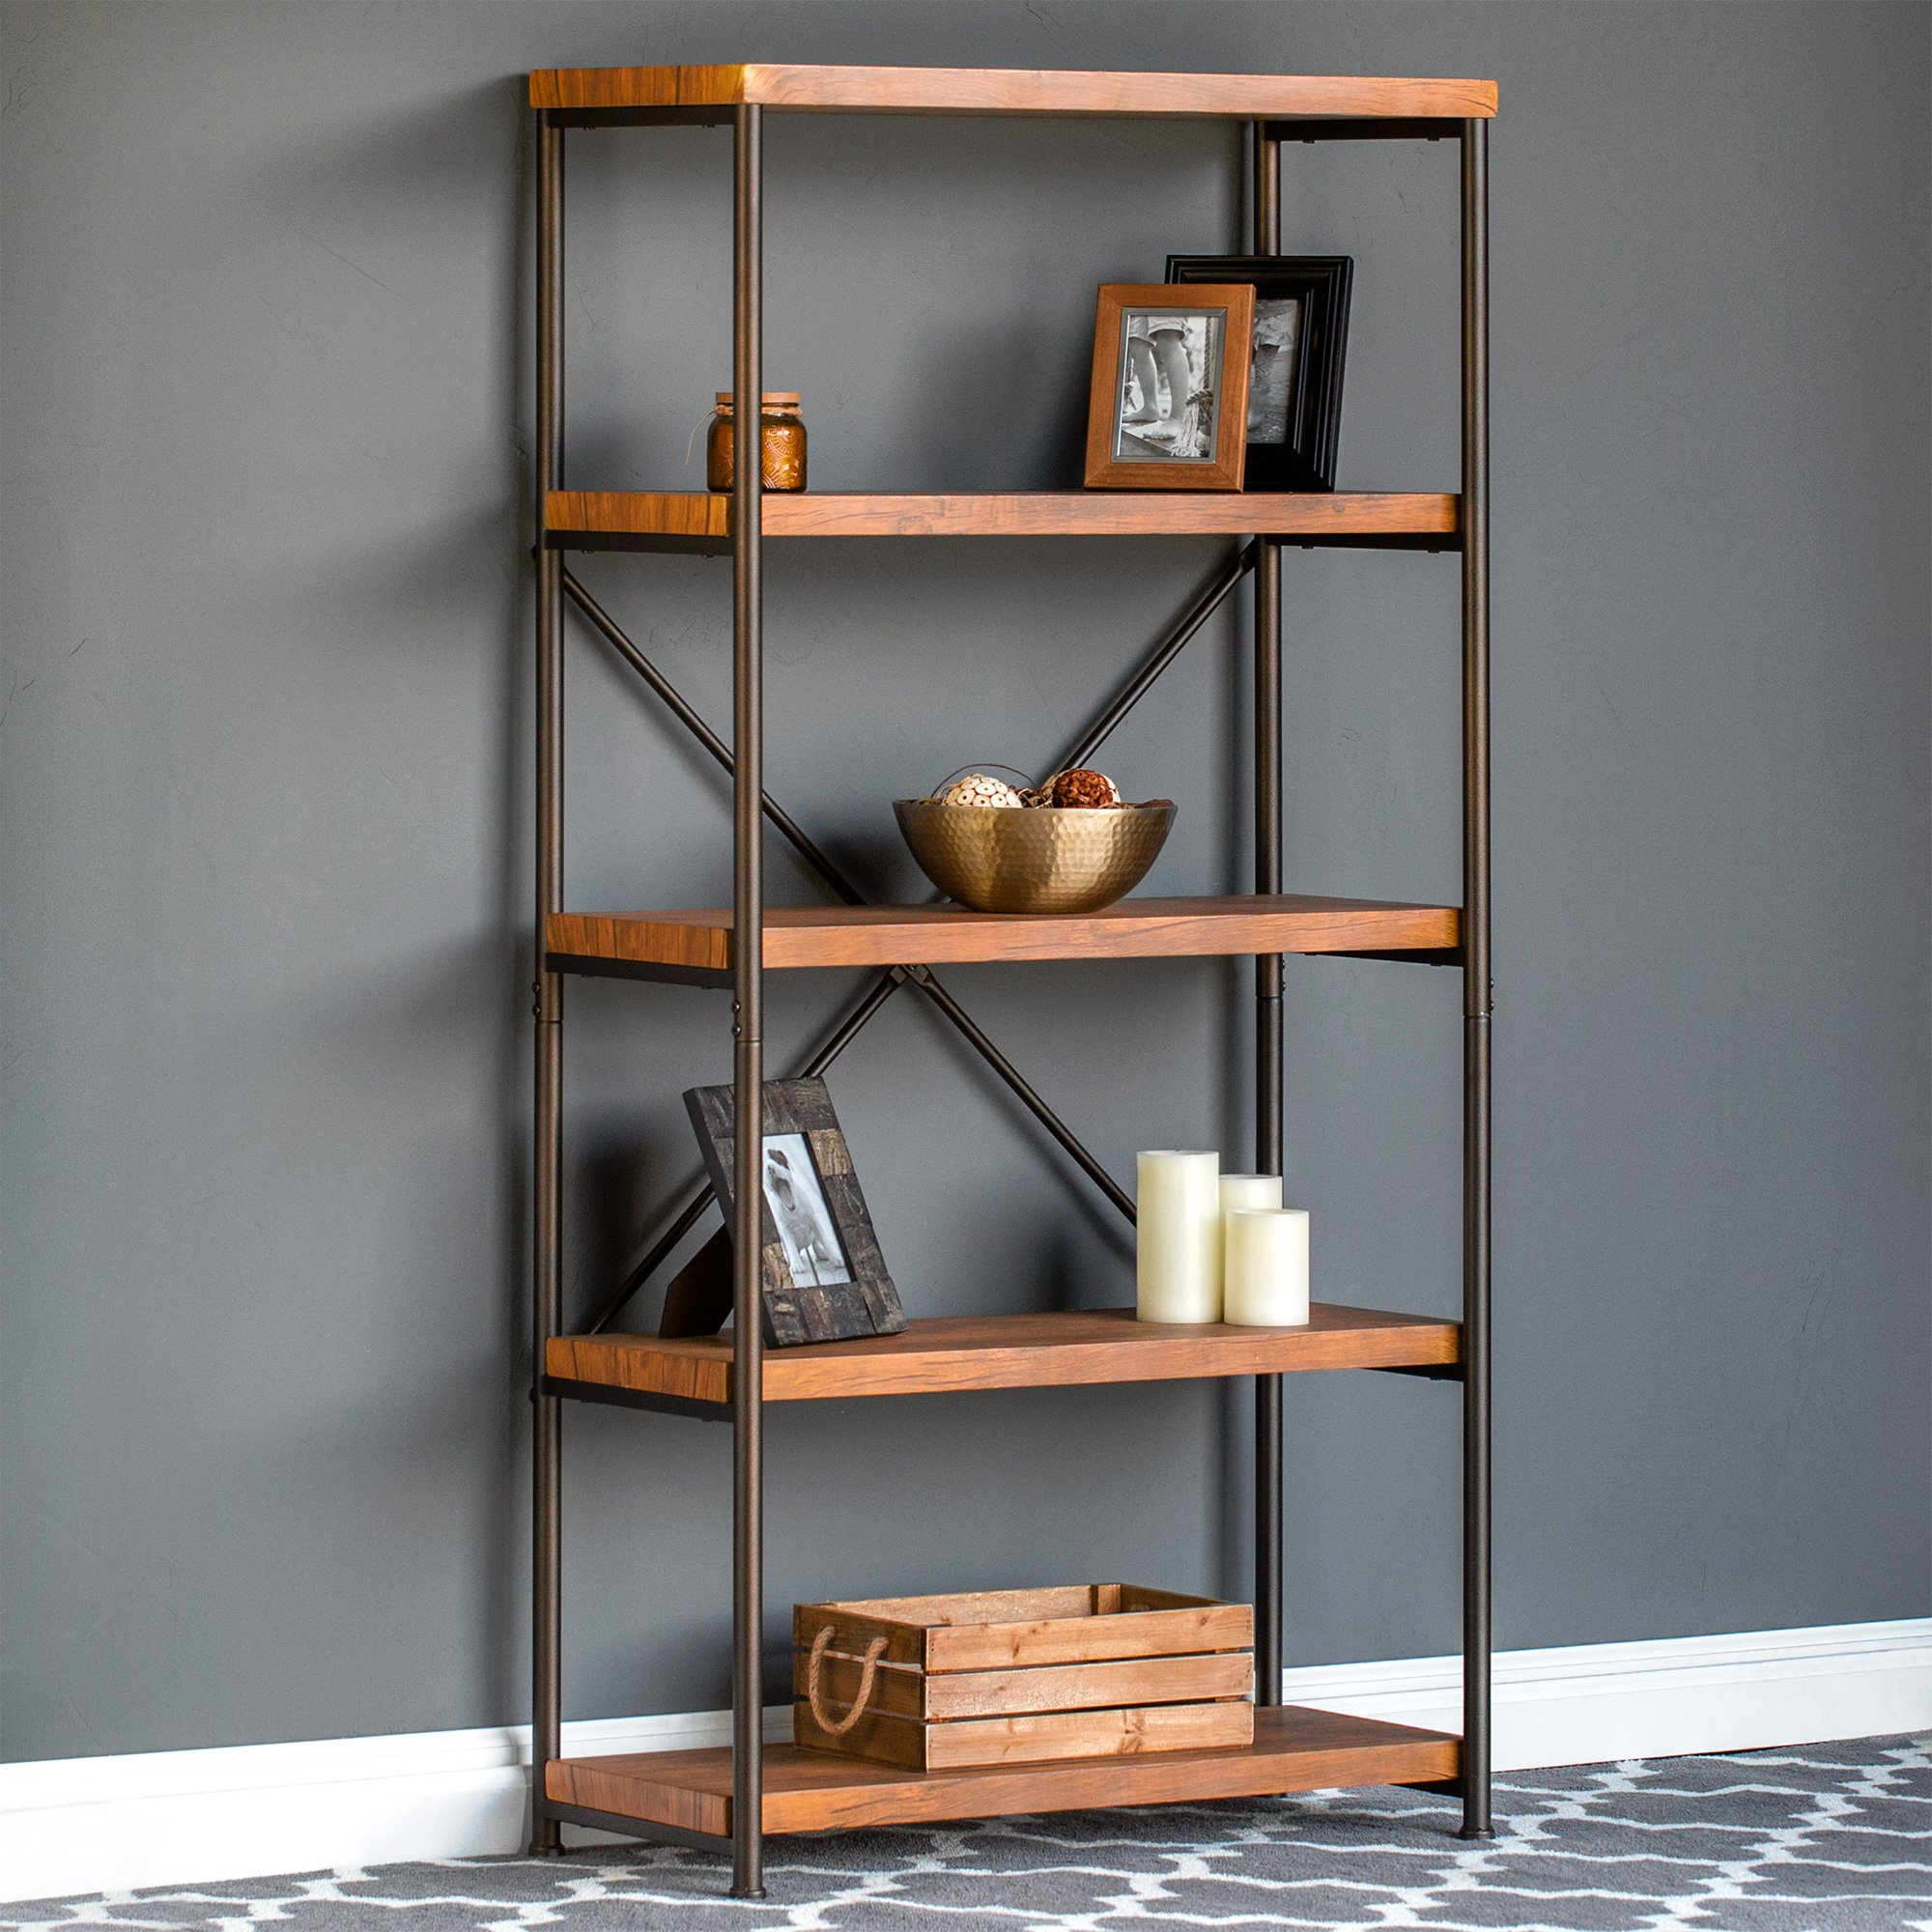 Best Choice Products 4-Tier Rustic Industrial Bookshelf Display Decor Accent w/Metal Frame, Wood Shelves - Brown by Best Choice Products (Image #2)